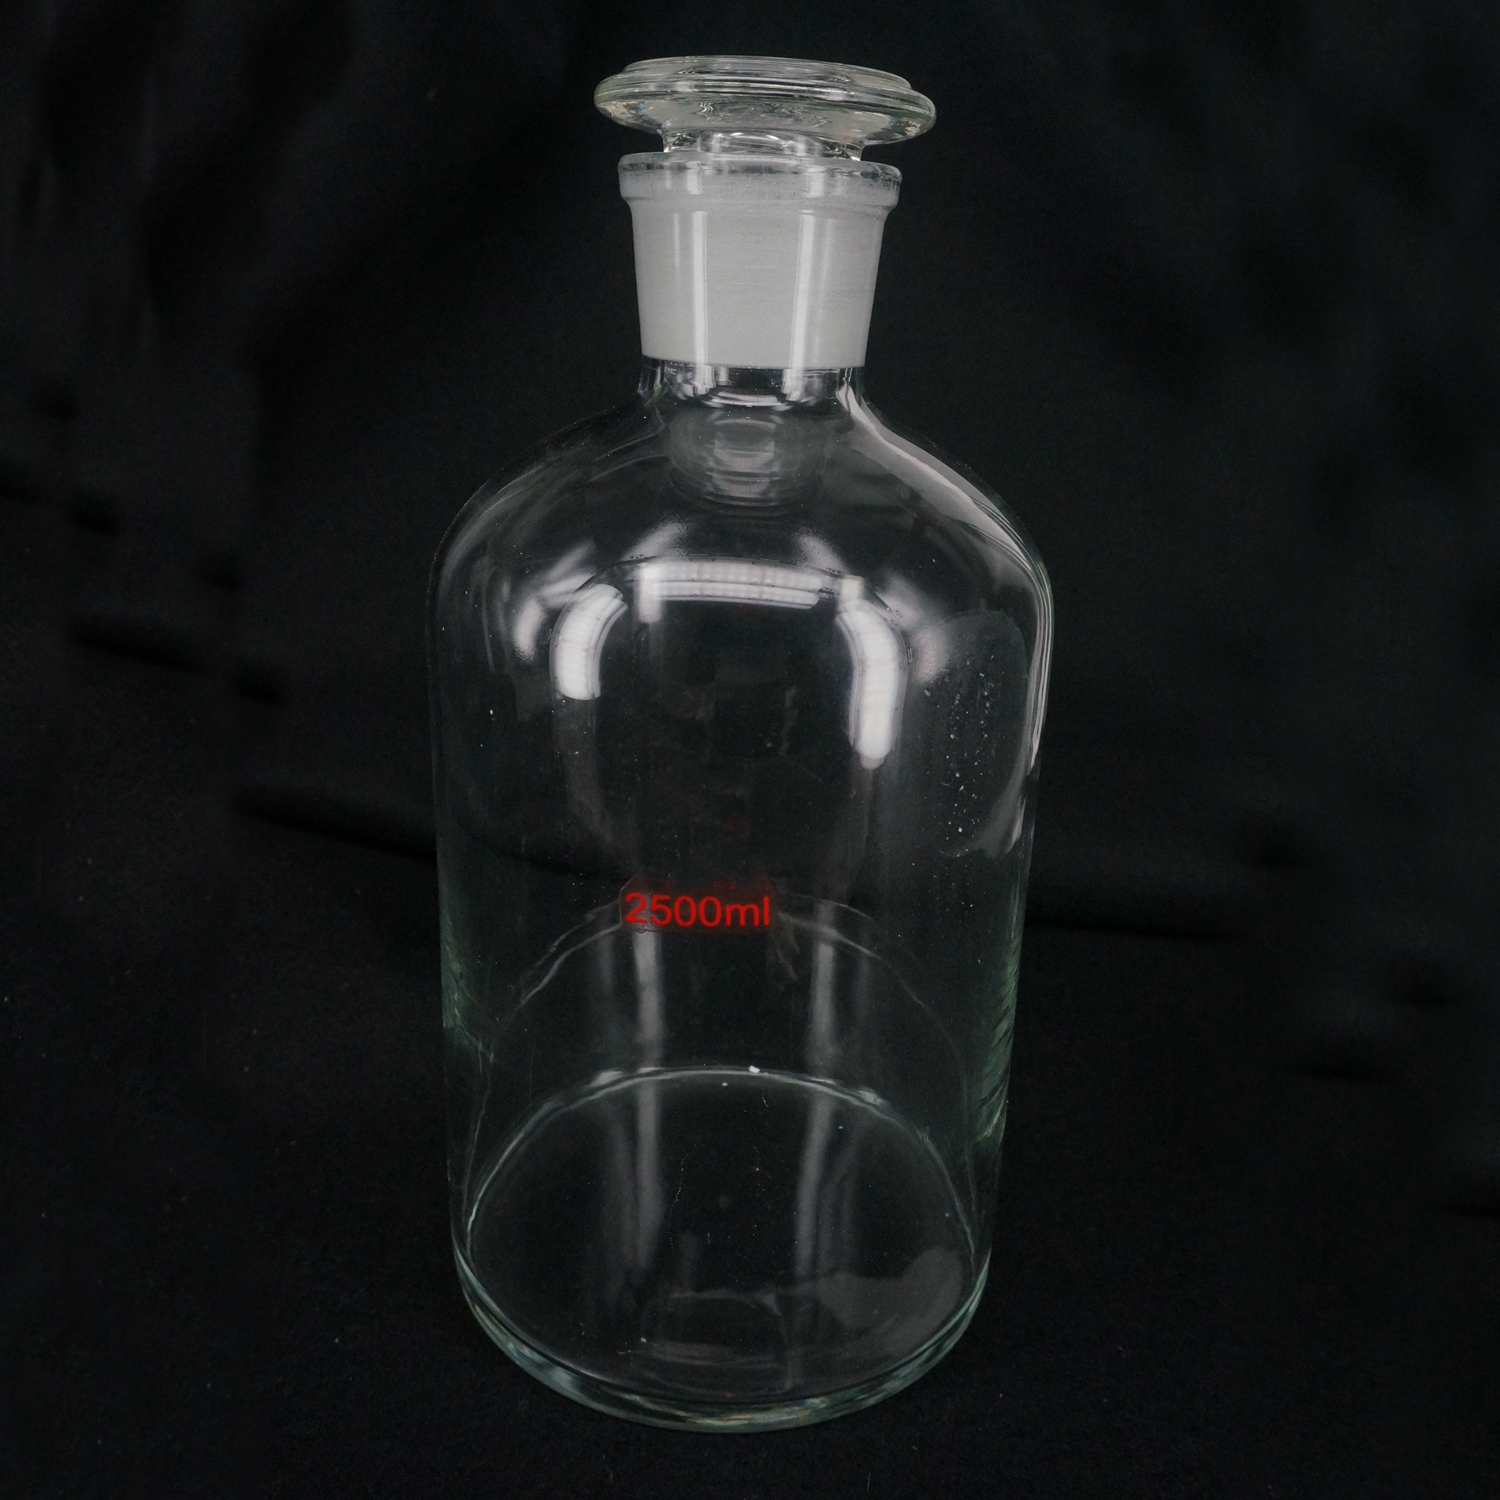 2500ml Glass Reagent Bottle With Ground-in Glass Stopper Narrow Mouth Transparent Glass Bottle2500ml Glass Reagent Bottle With Ground-in Glass Stopper Narrow Mouth Transparent Glass Bottle